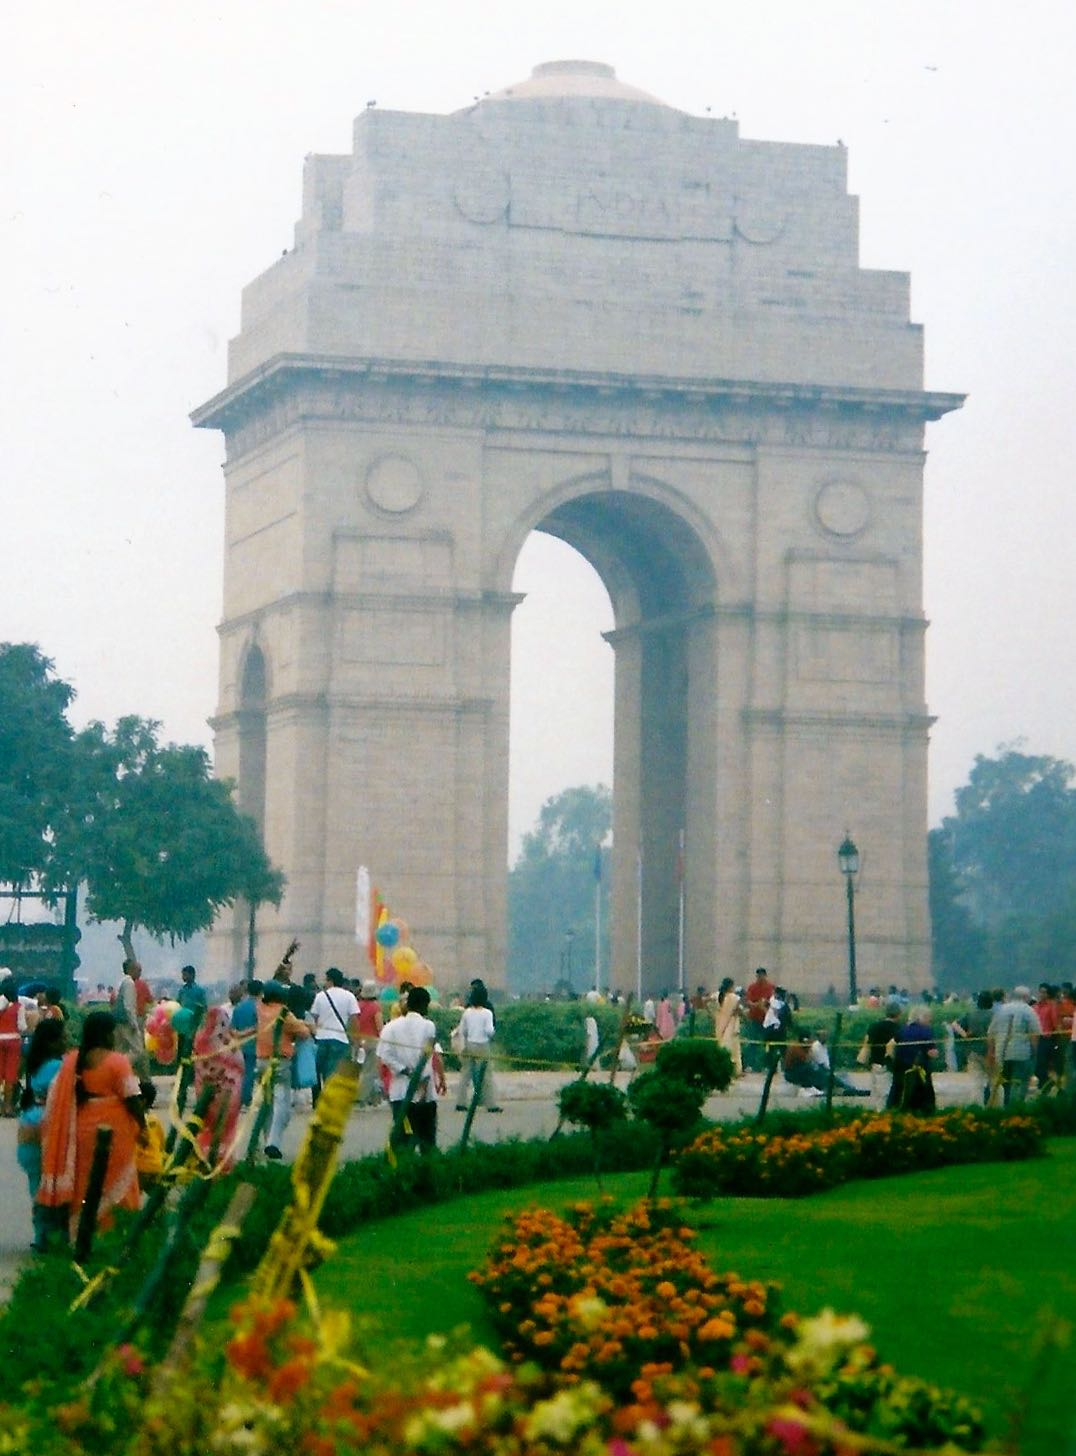 THE DEHLI MEMORIAL OR INDIA GATE DESIGNED BY SIR EDWARD LUTYENS